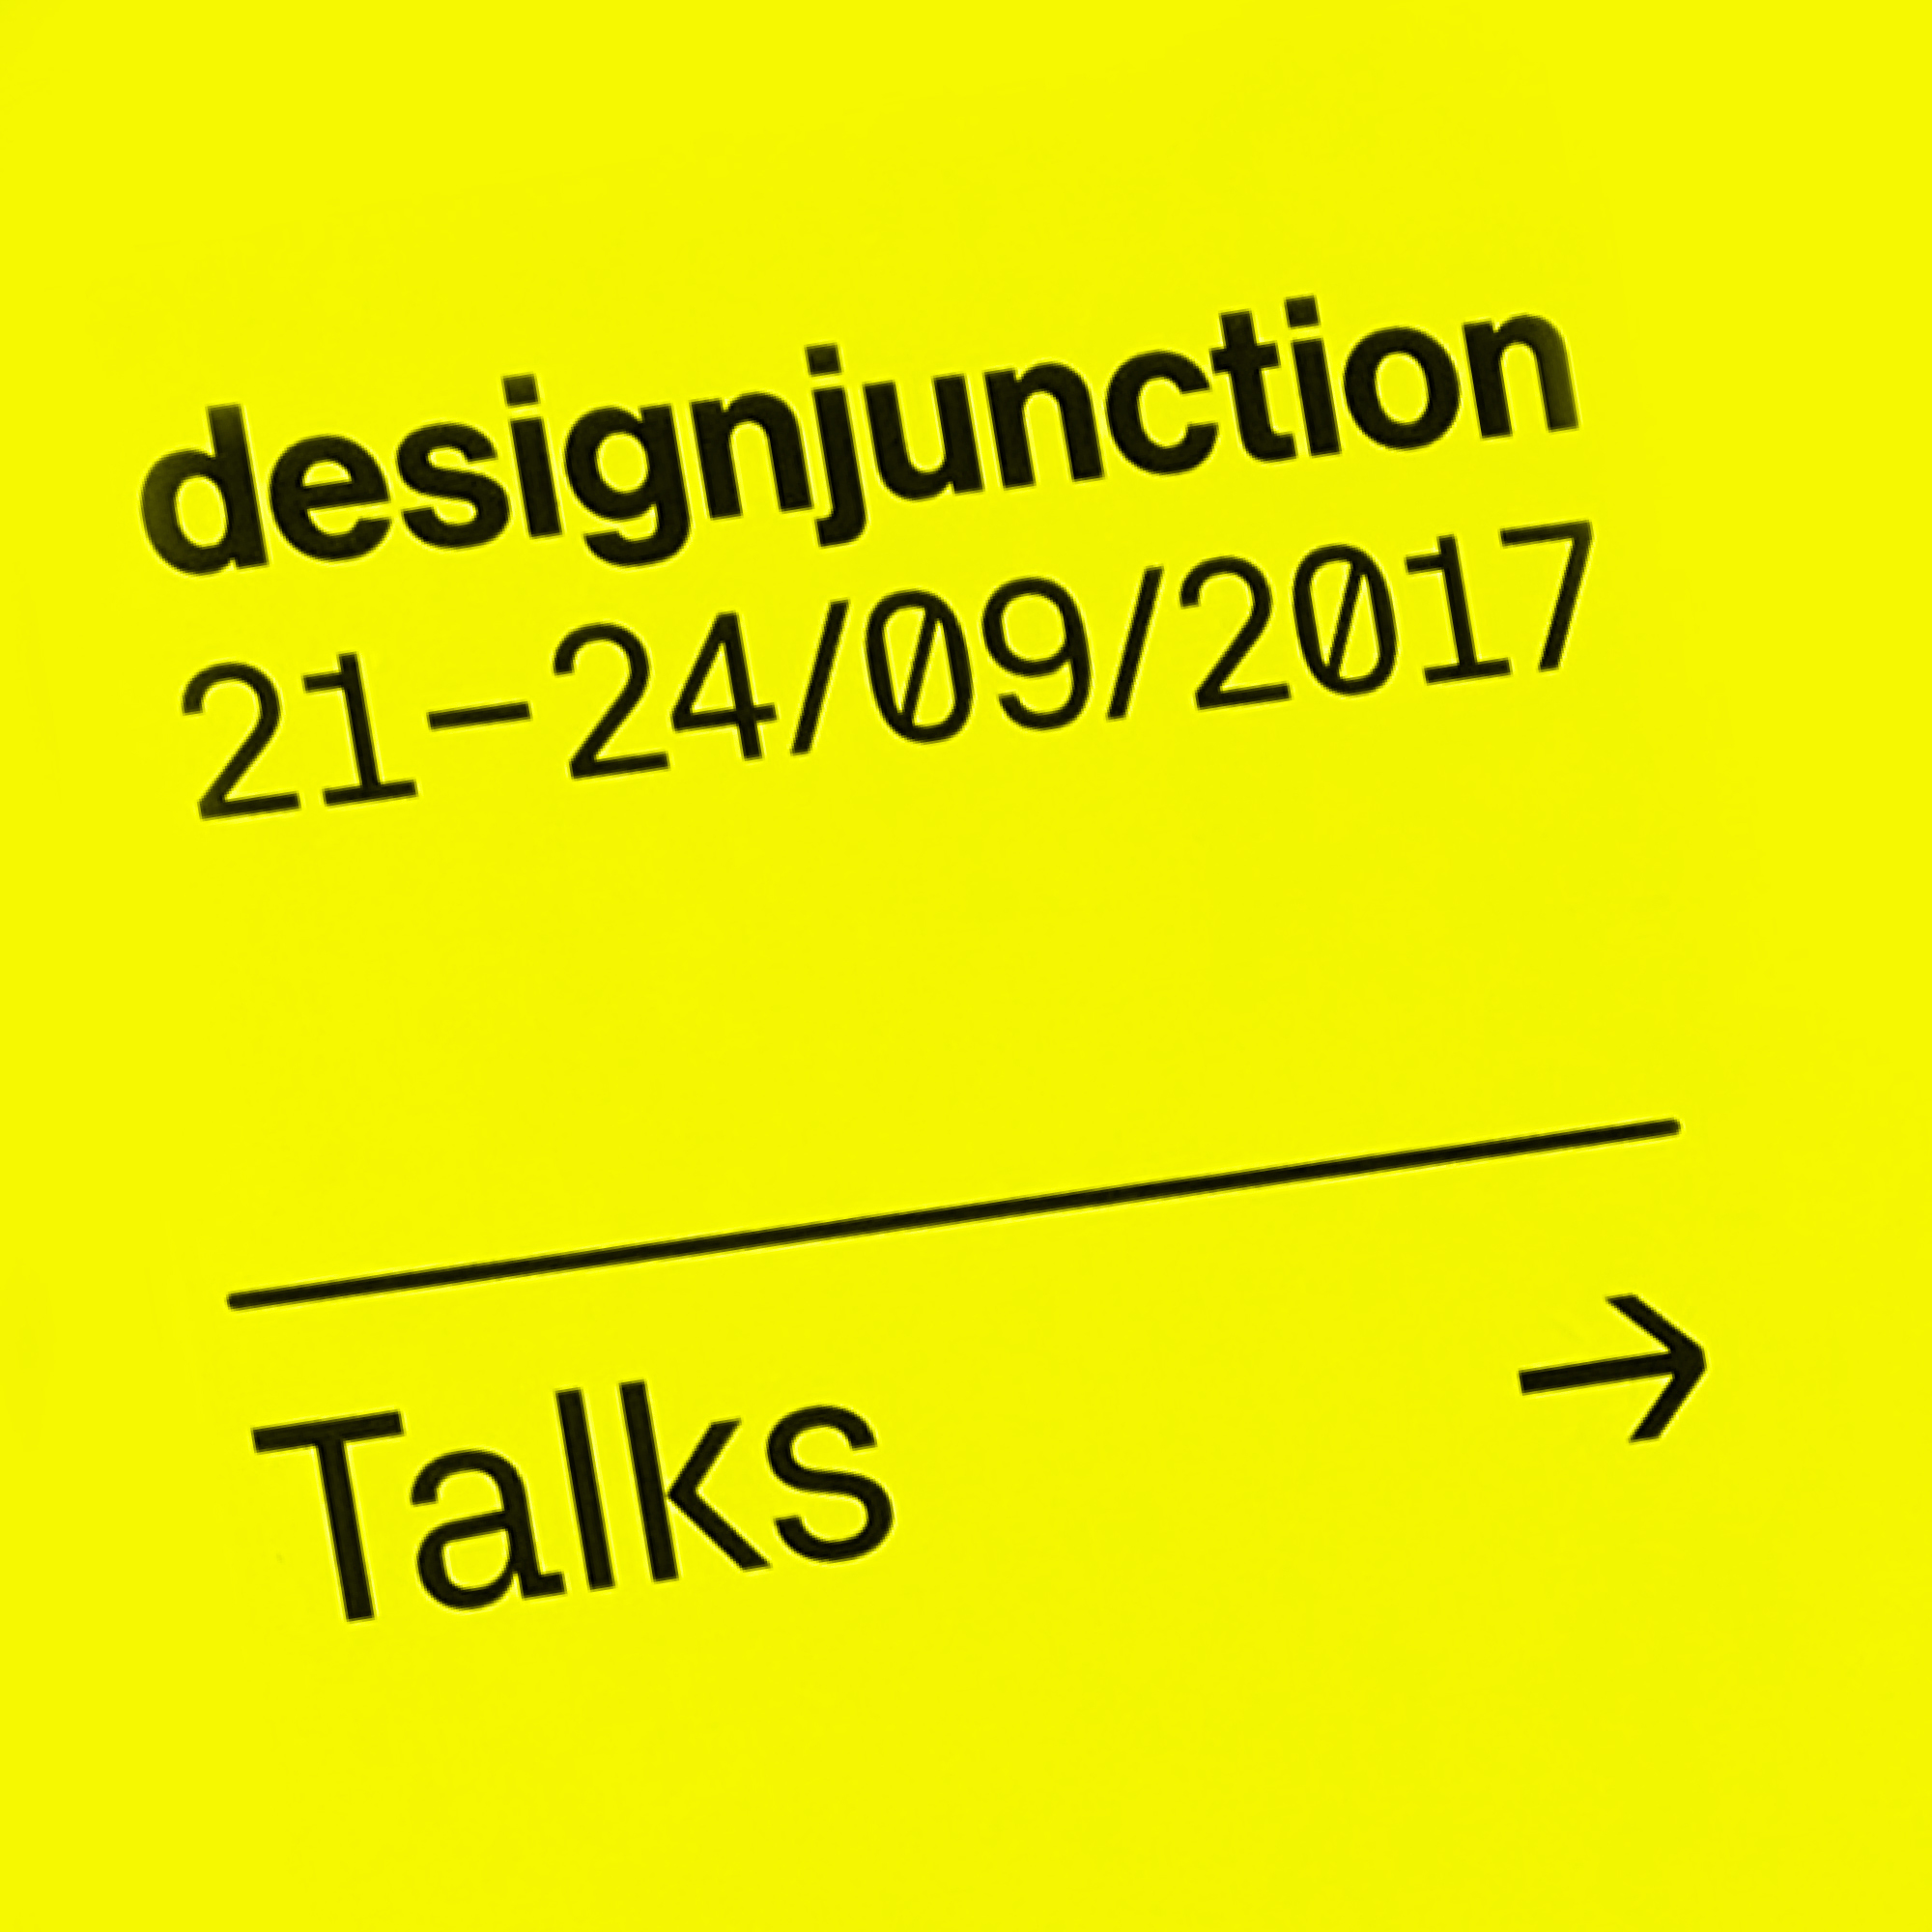 design-junction-talks